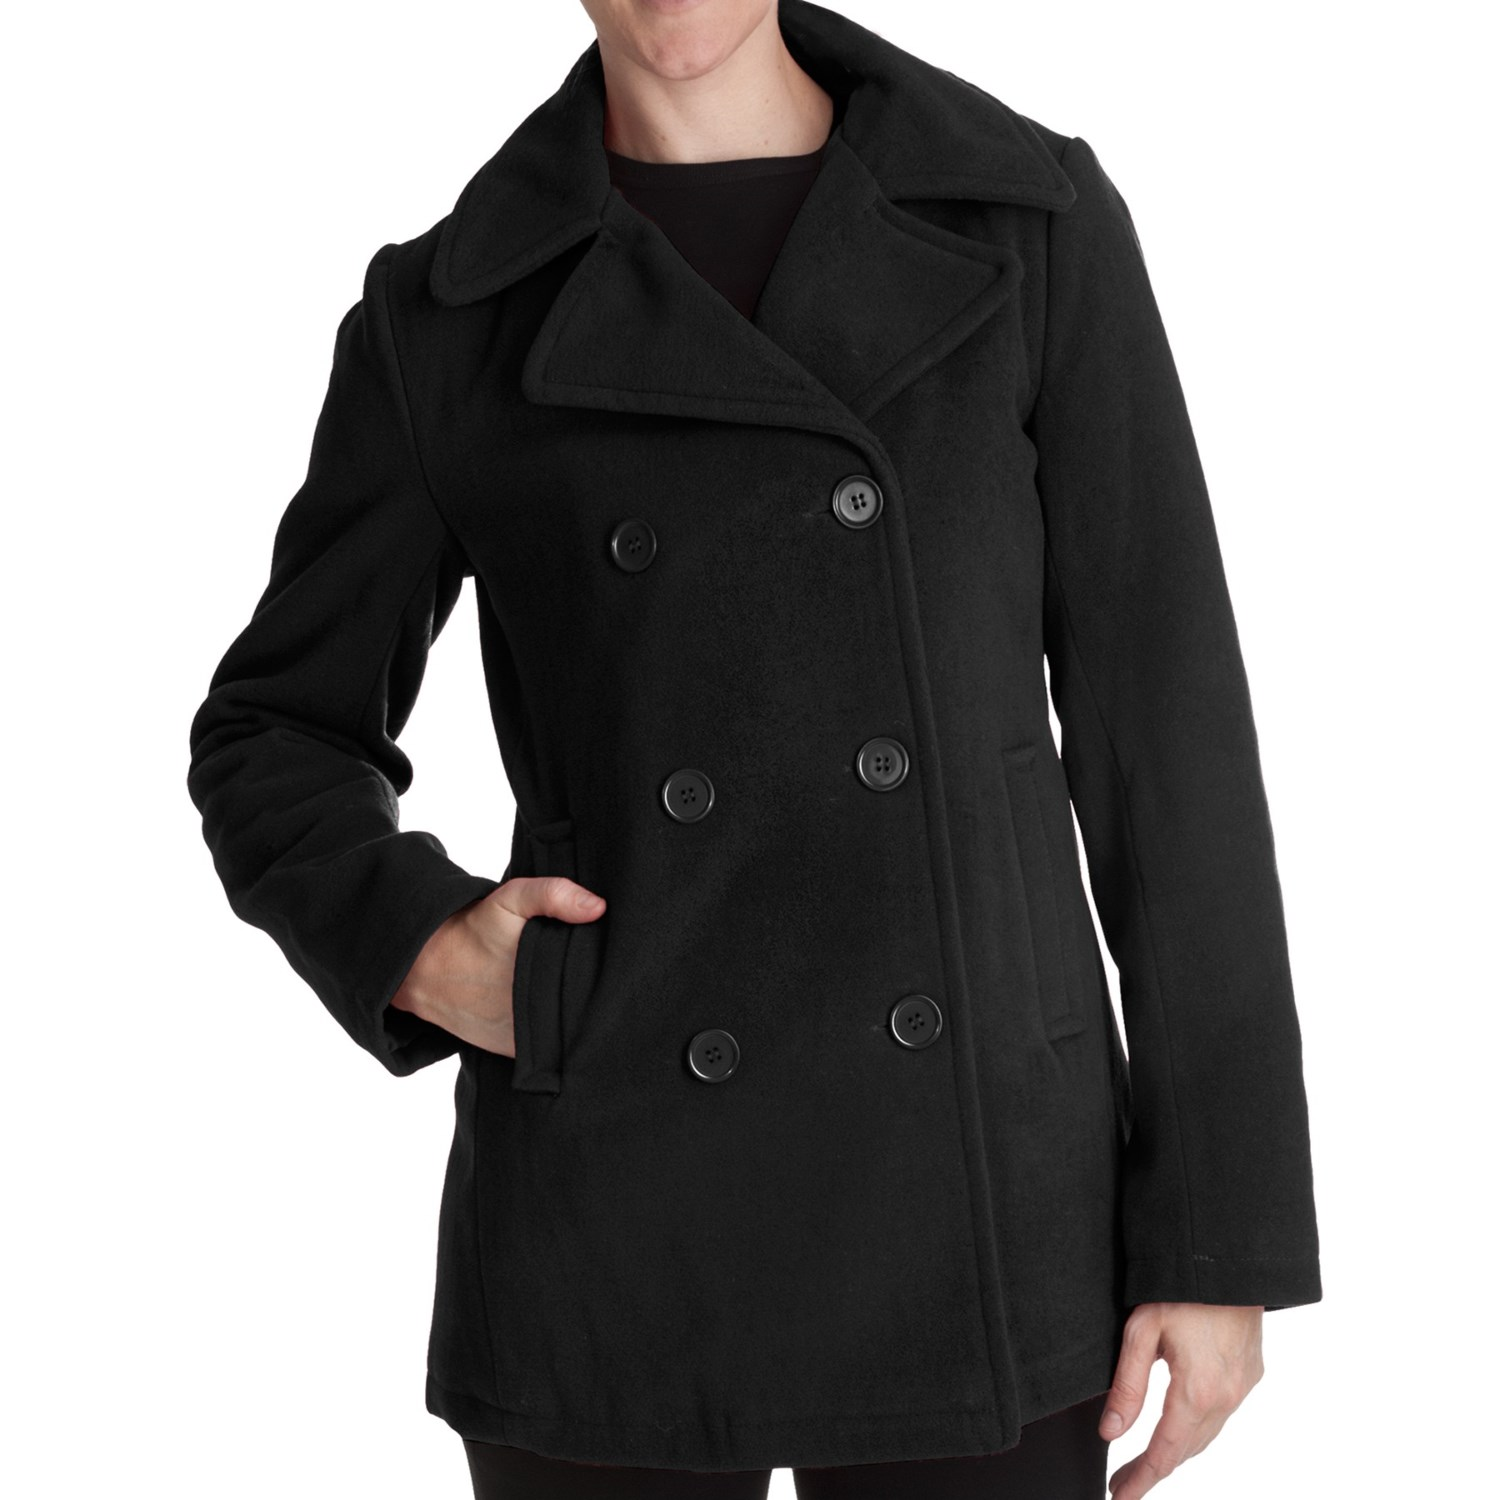 Shop for Women's Pea Coats from our Outerwear range at John Lewis. Free delivery on orders over £